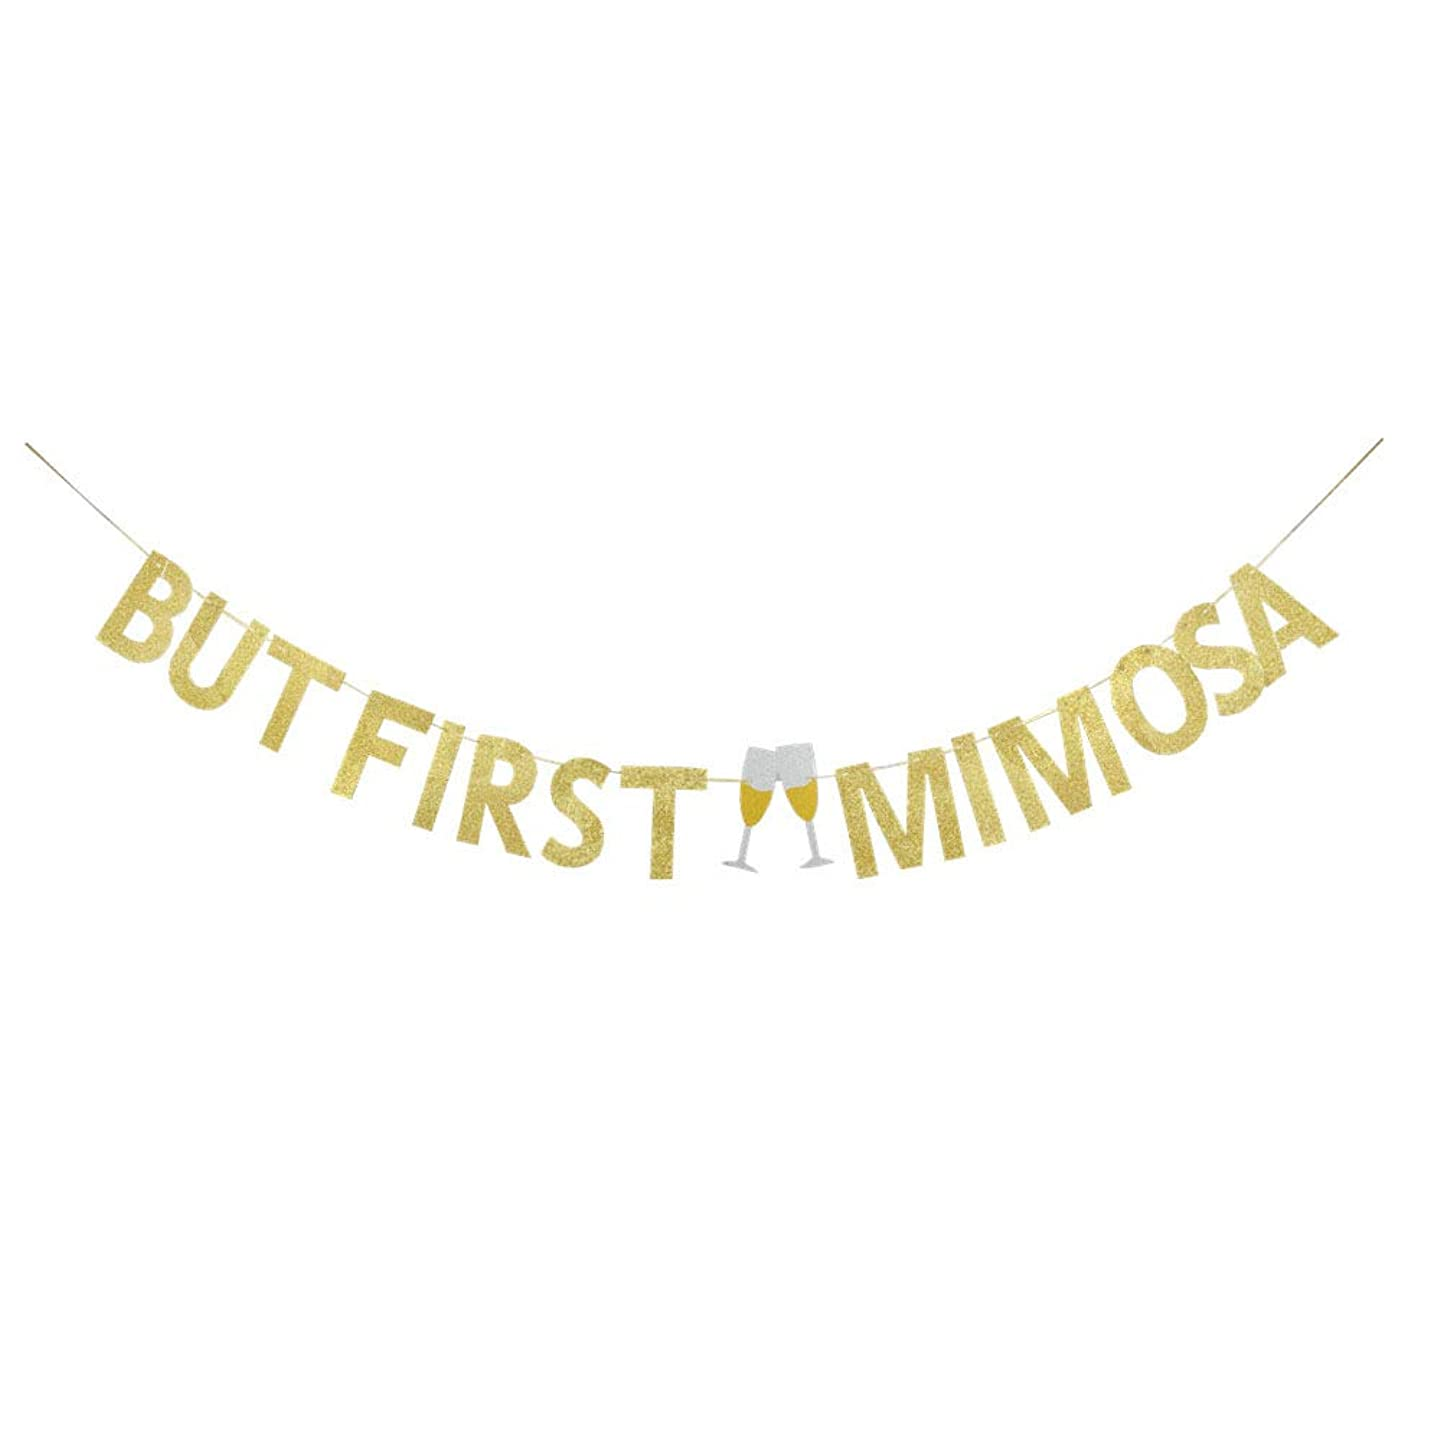 But First Mimosa Gold Glitter Banner for Bridal Shower Bubbly Bar Wedding Bachelorette Celebrating Bunting Banner Party Decorations